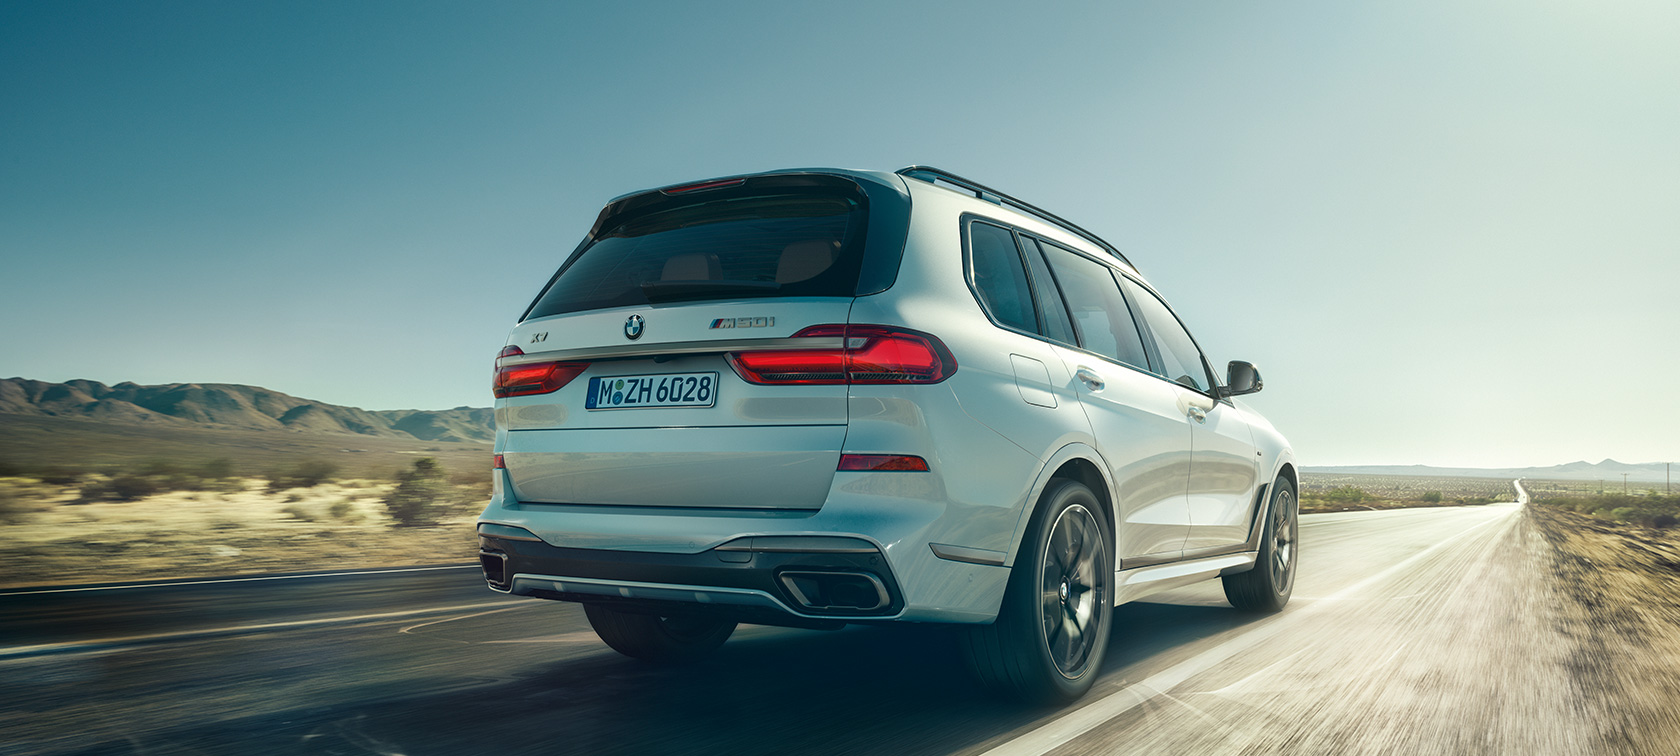 BMW X7 M50i in Mineral White, driving on an empty highway, rear view, G07, 2019